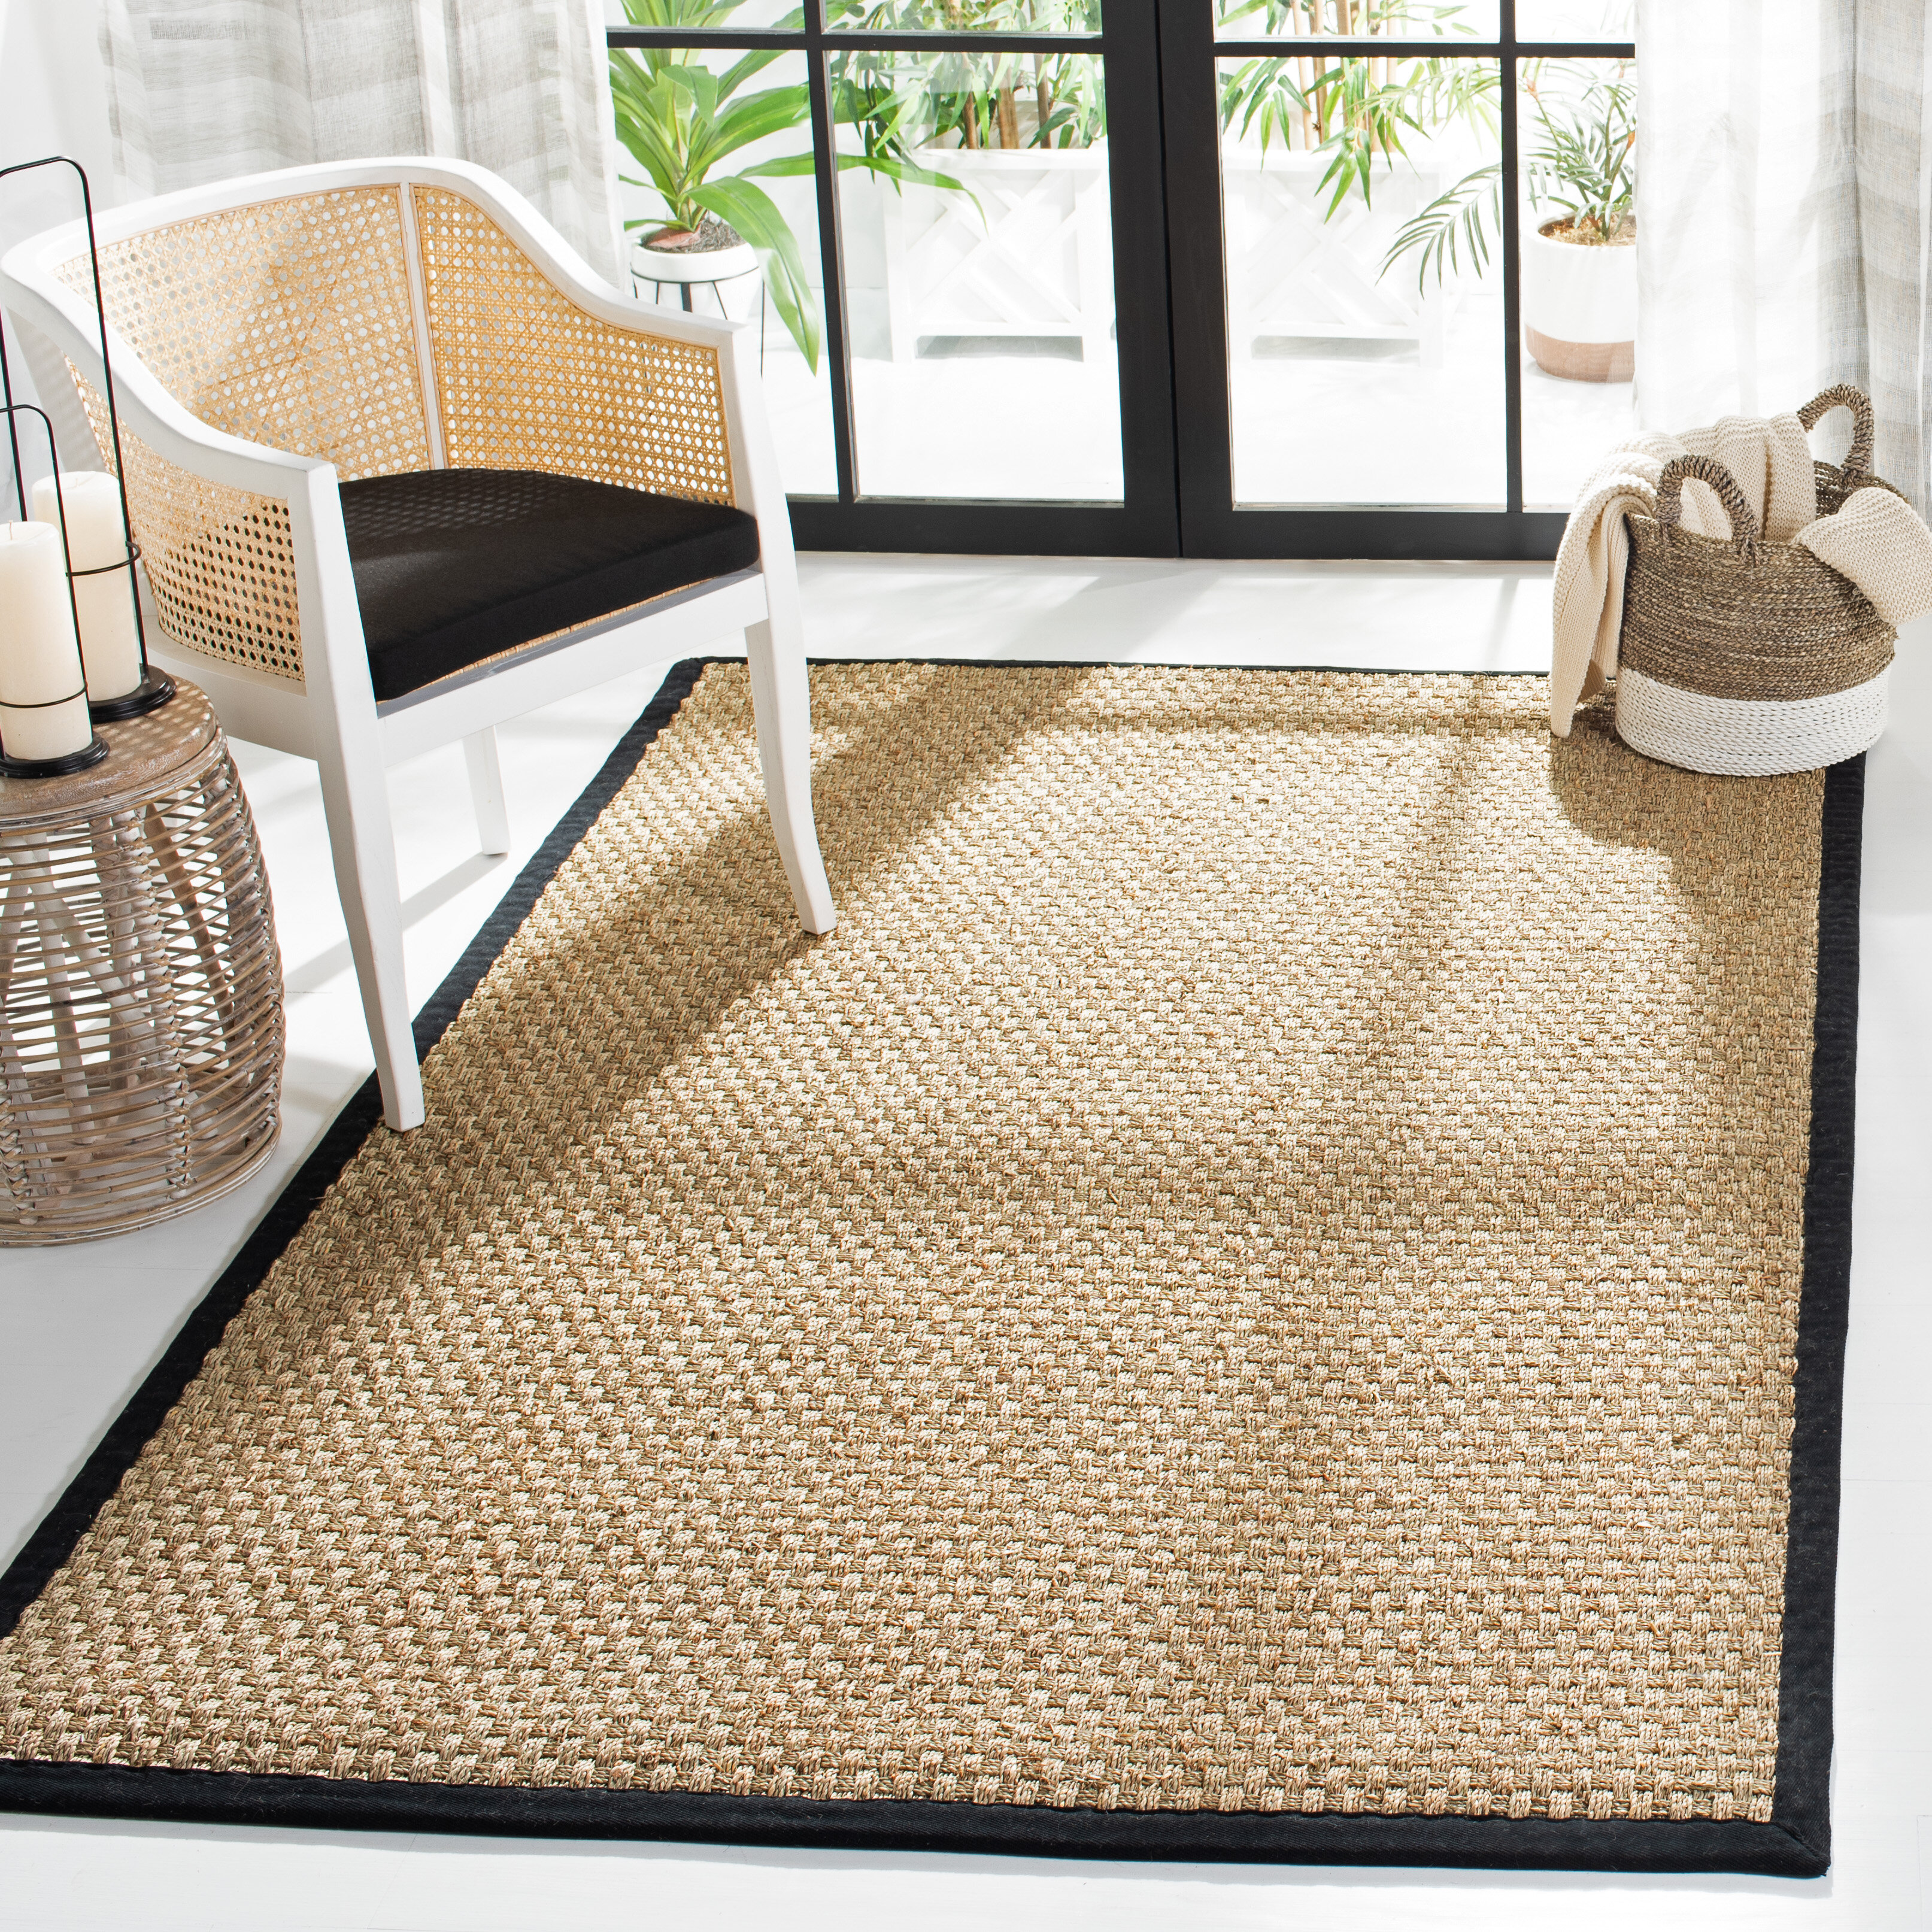 Bamboo Seagrass Black Area Rugs You Ll Love In 2021 Wayfair